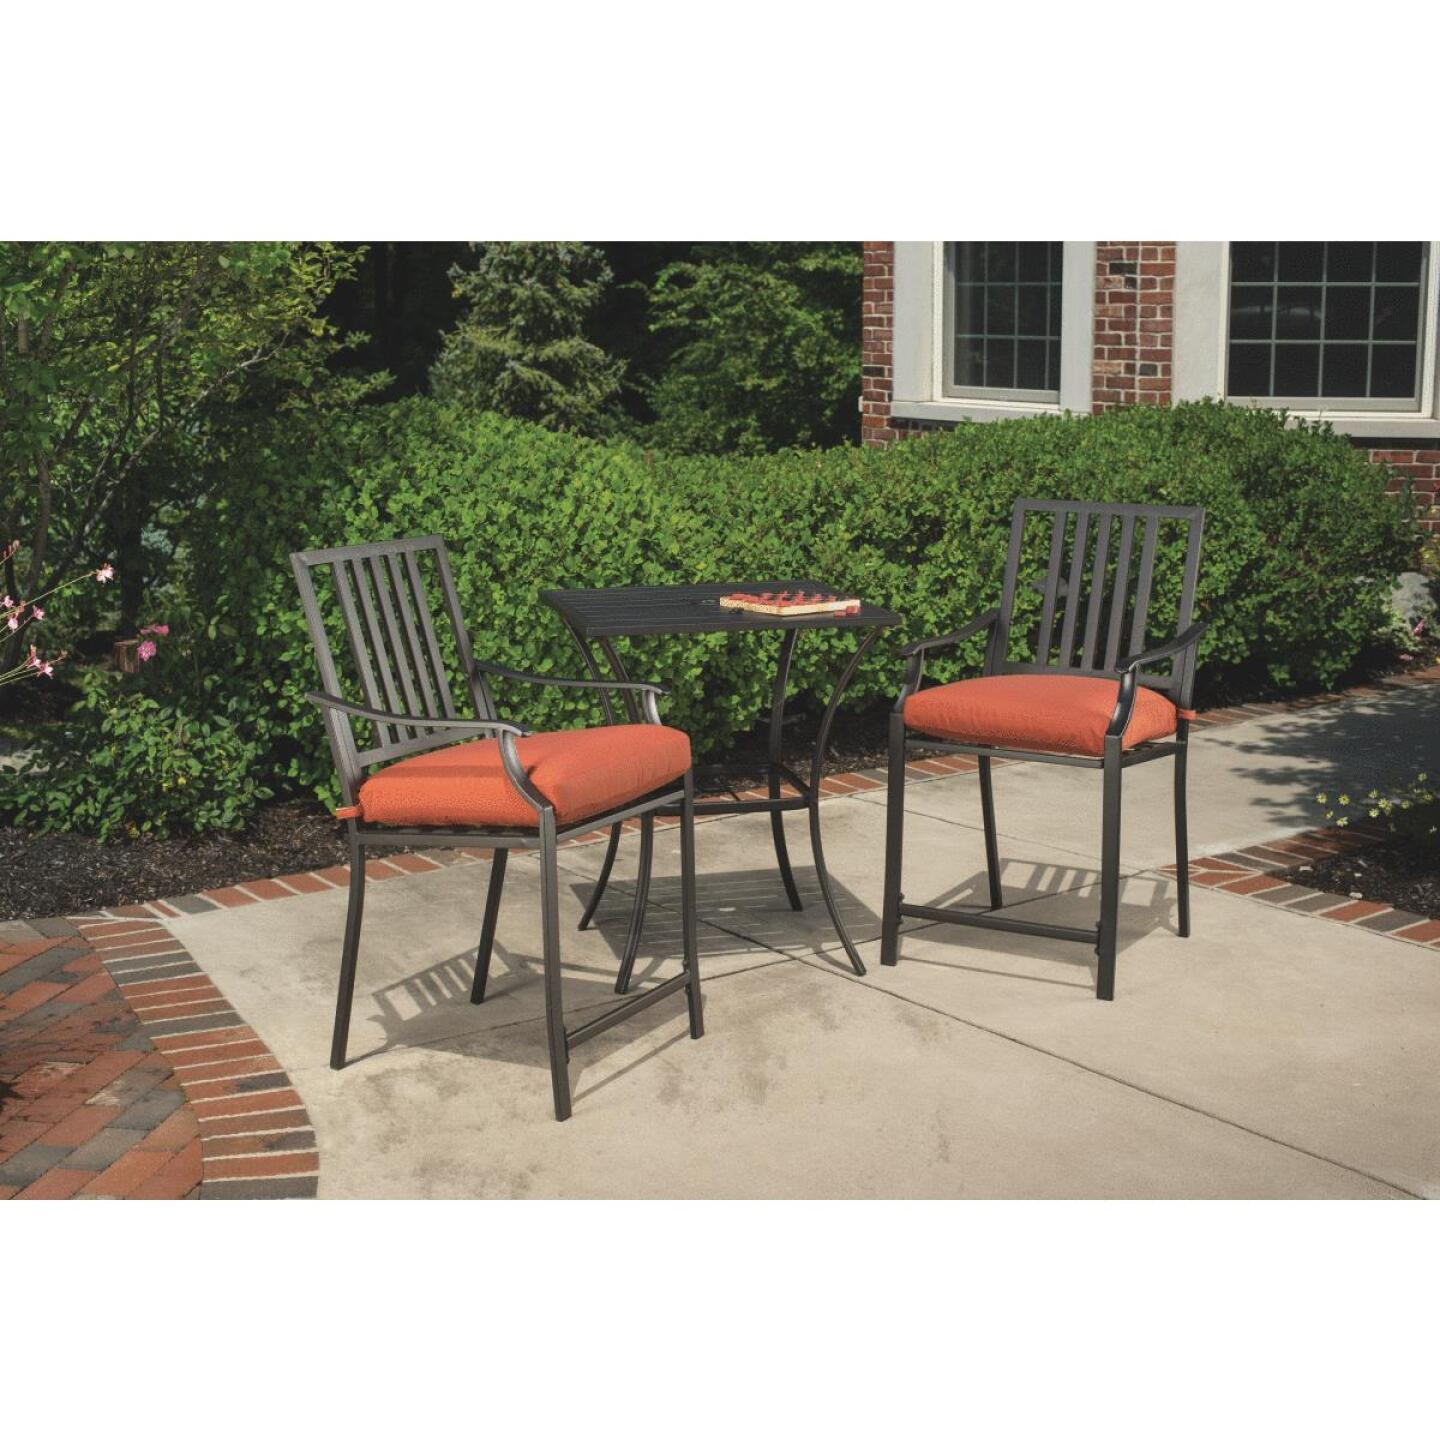 Nantucket 3-Piece Bistro Set with Seat Cushions Image 9